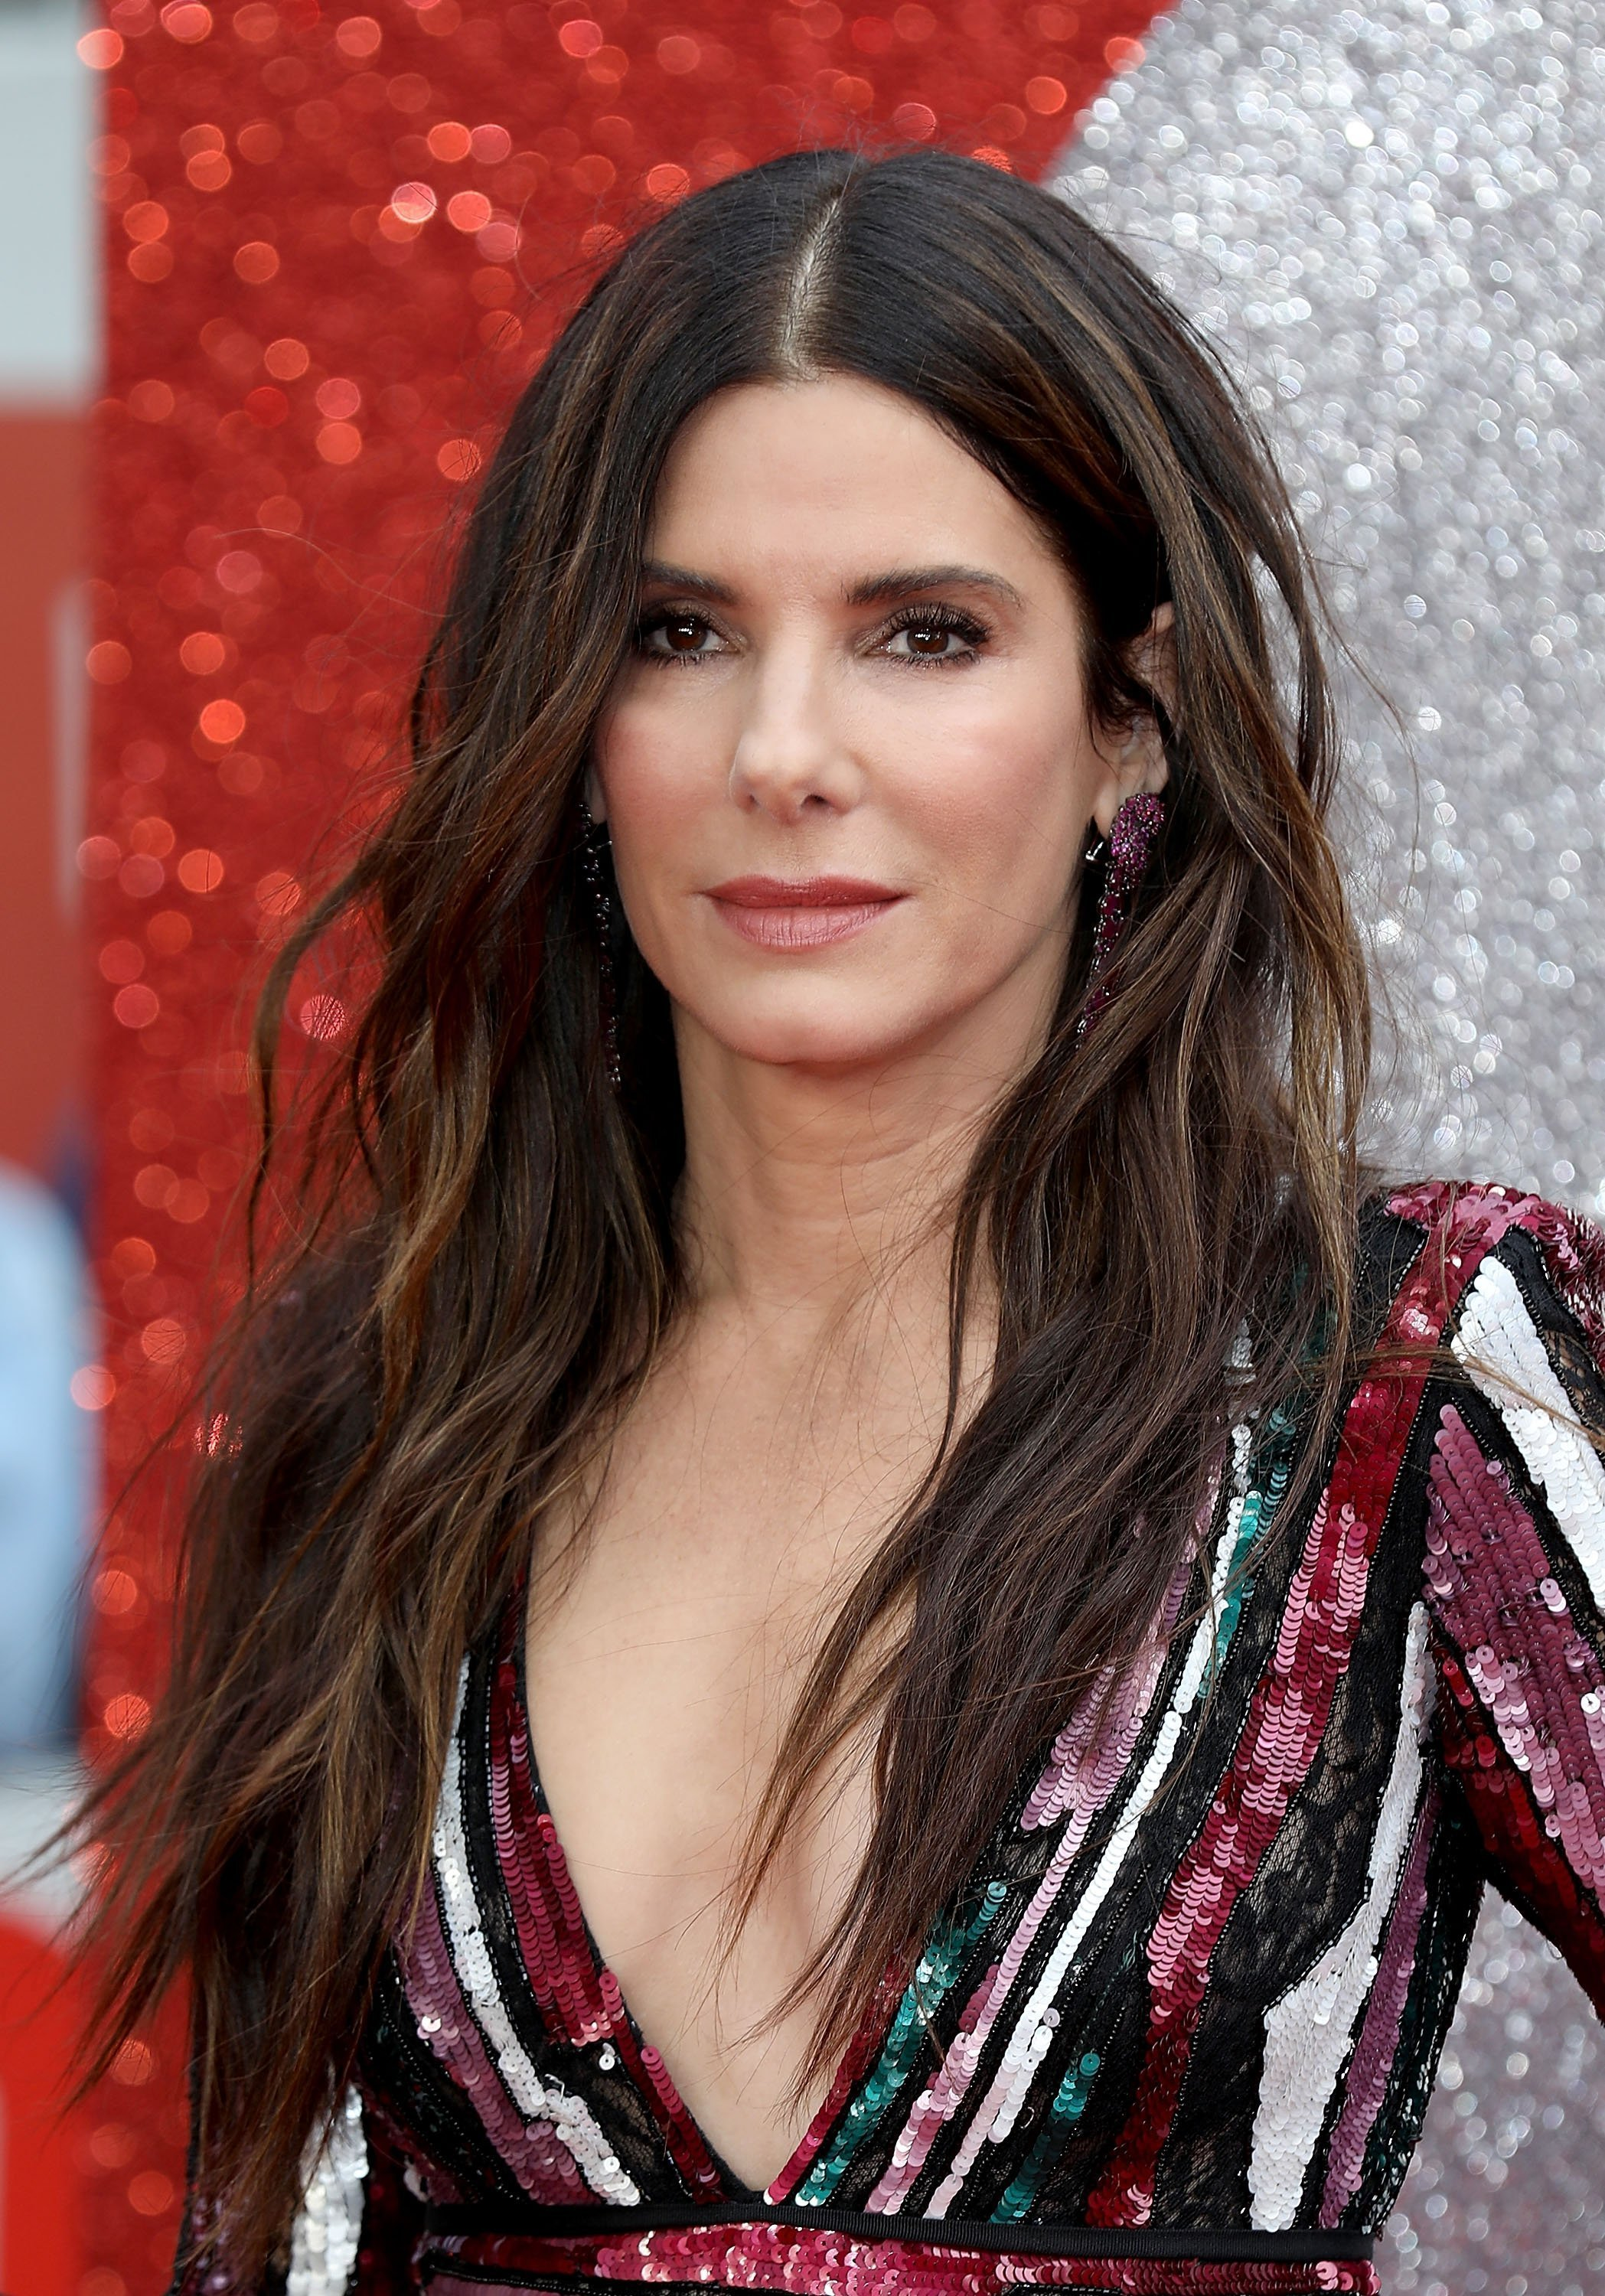 Sandra Bullock attends the 'Ocean's 8' UK Premiere held at Cineworld Leicester Square on June 13, 2018 | Photo: GettyImages